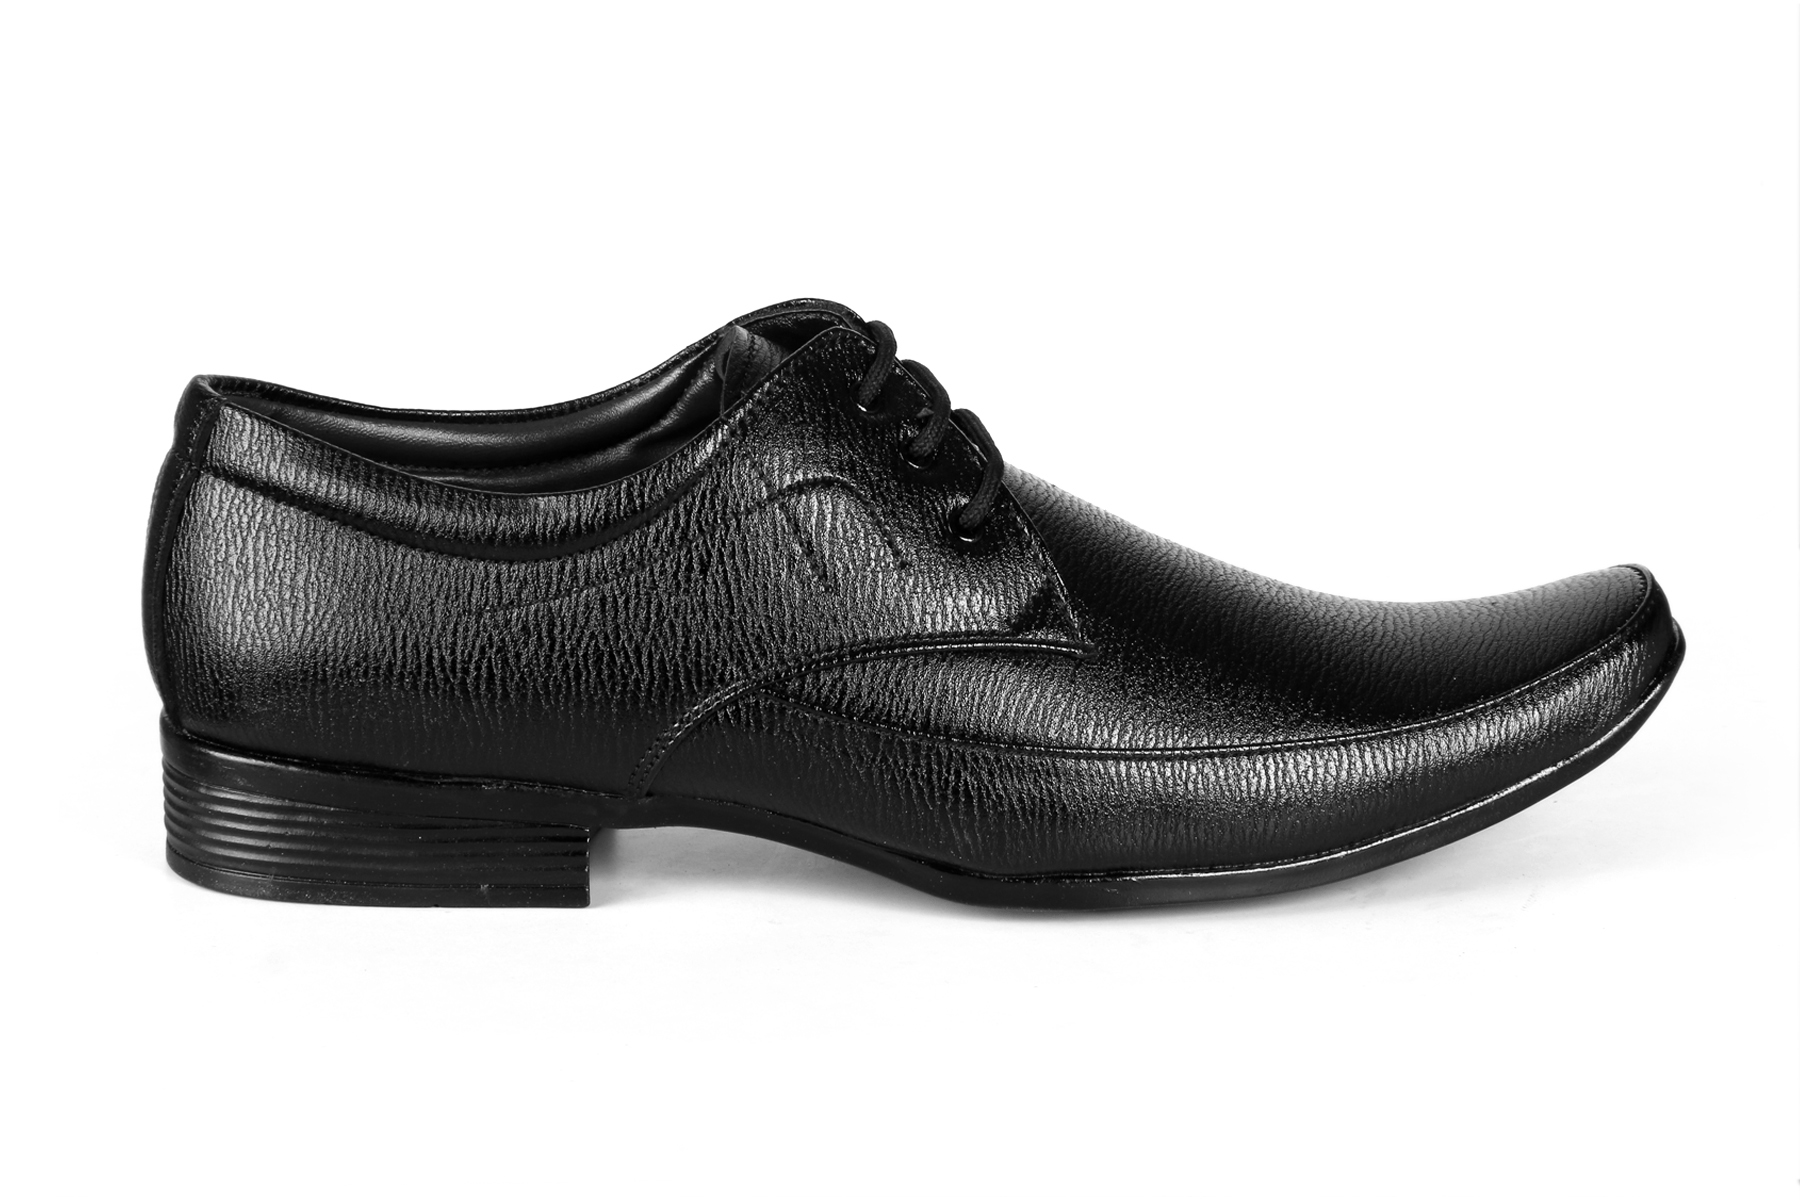 FORMAL MEN'S DERBY STYLE SHOE